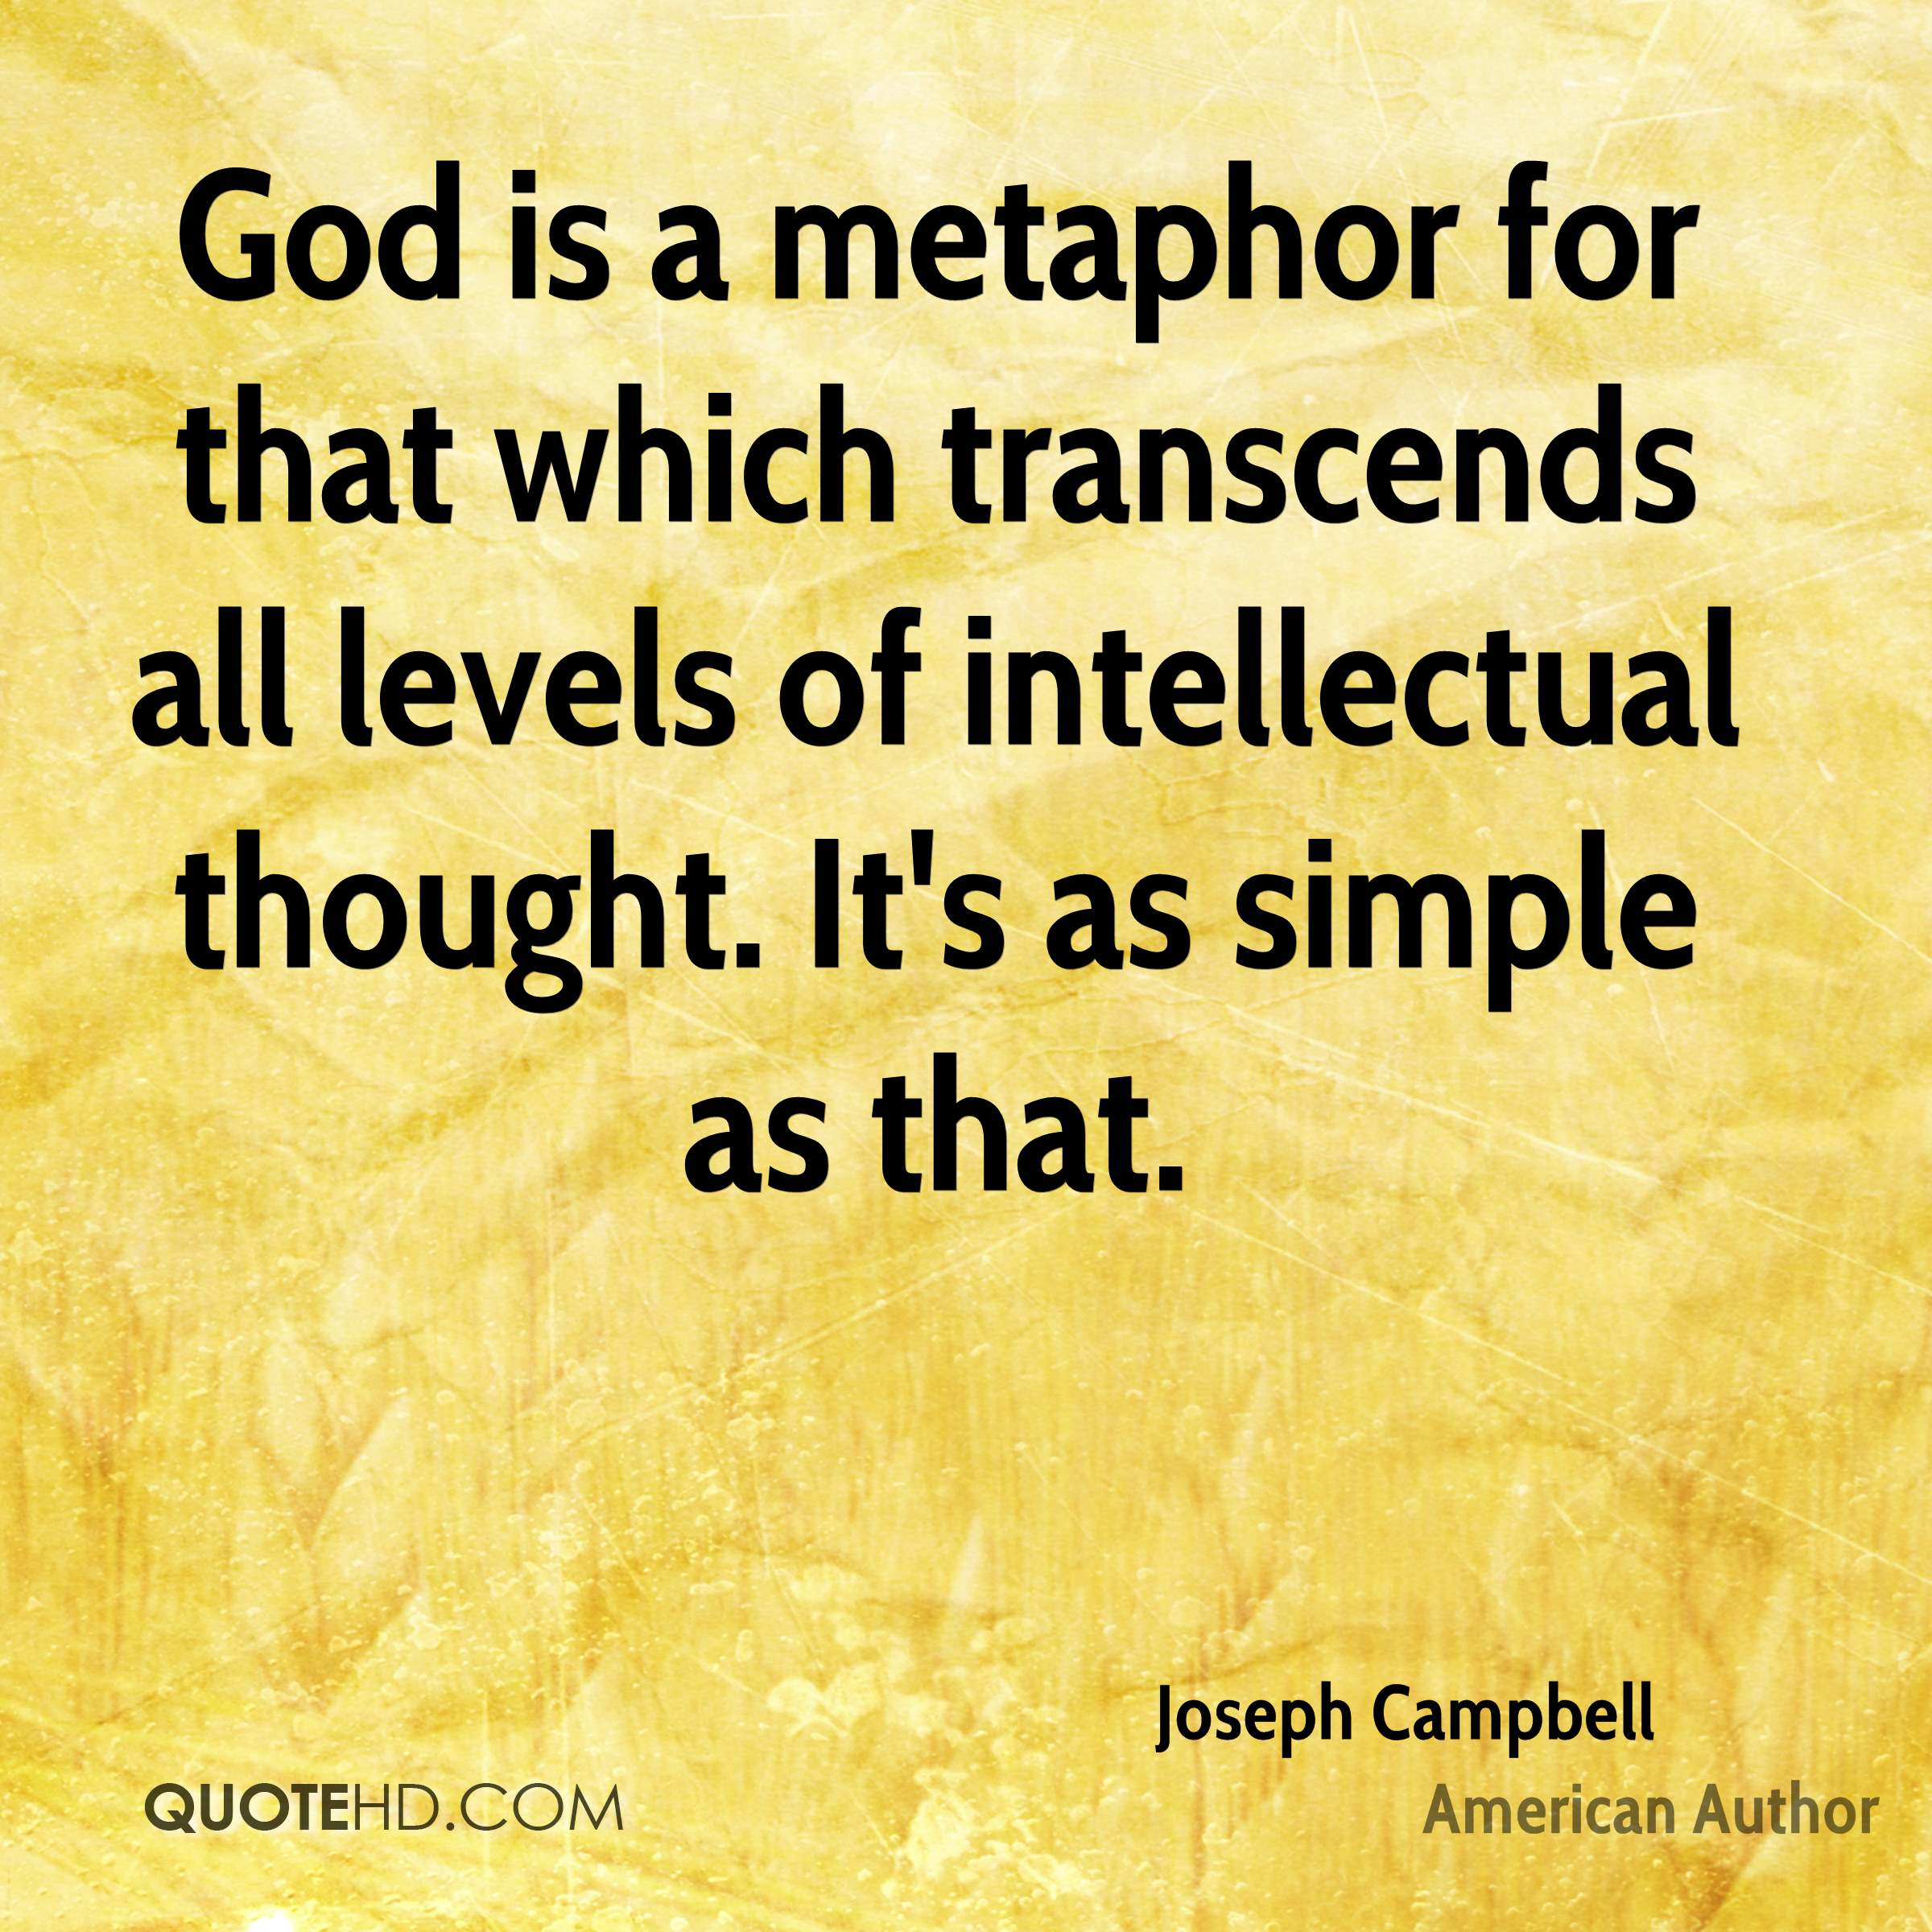 God is a metaphor for that which transcends all levels of intellectual thought. It's as simple as that.